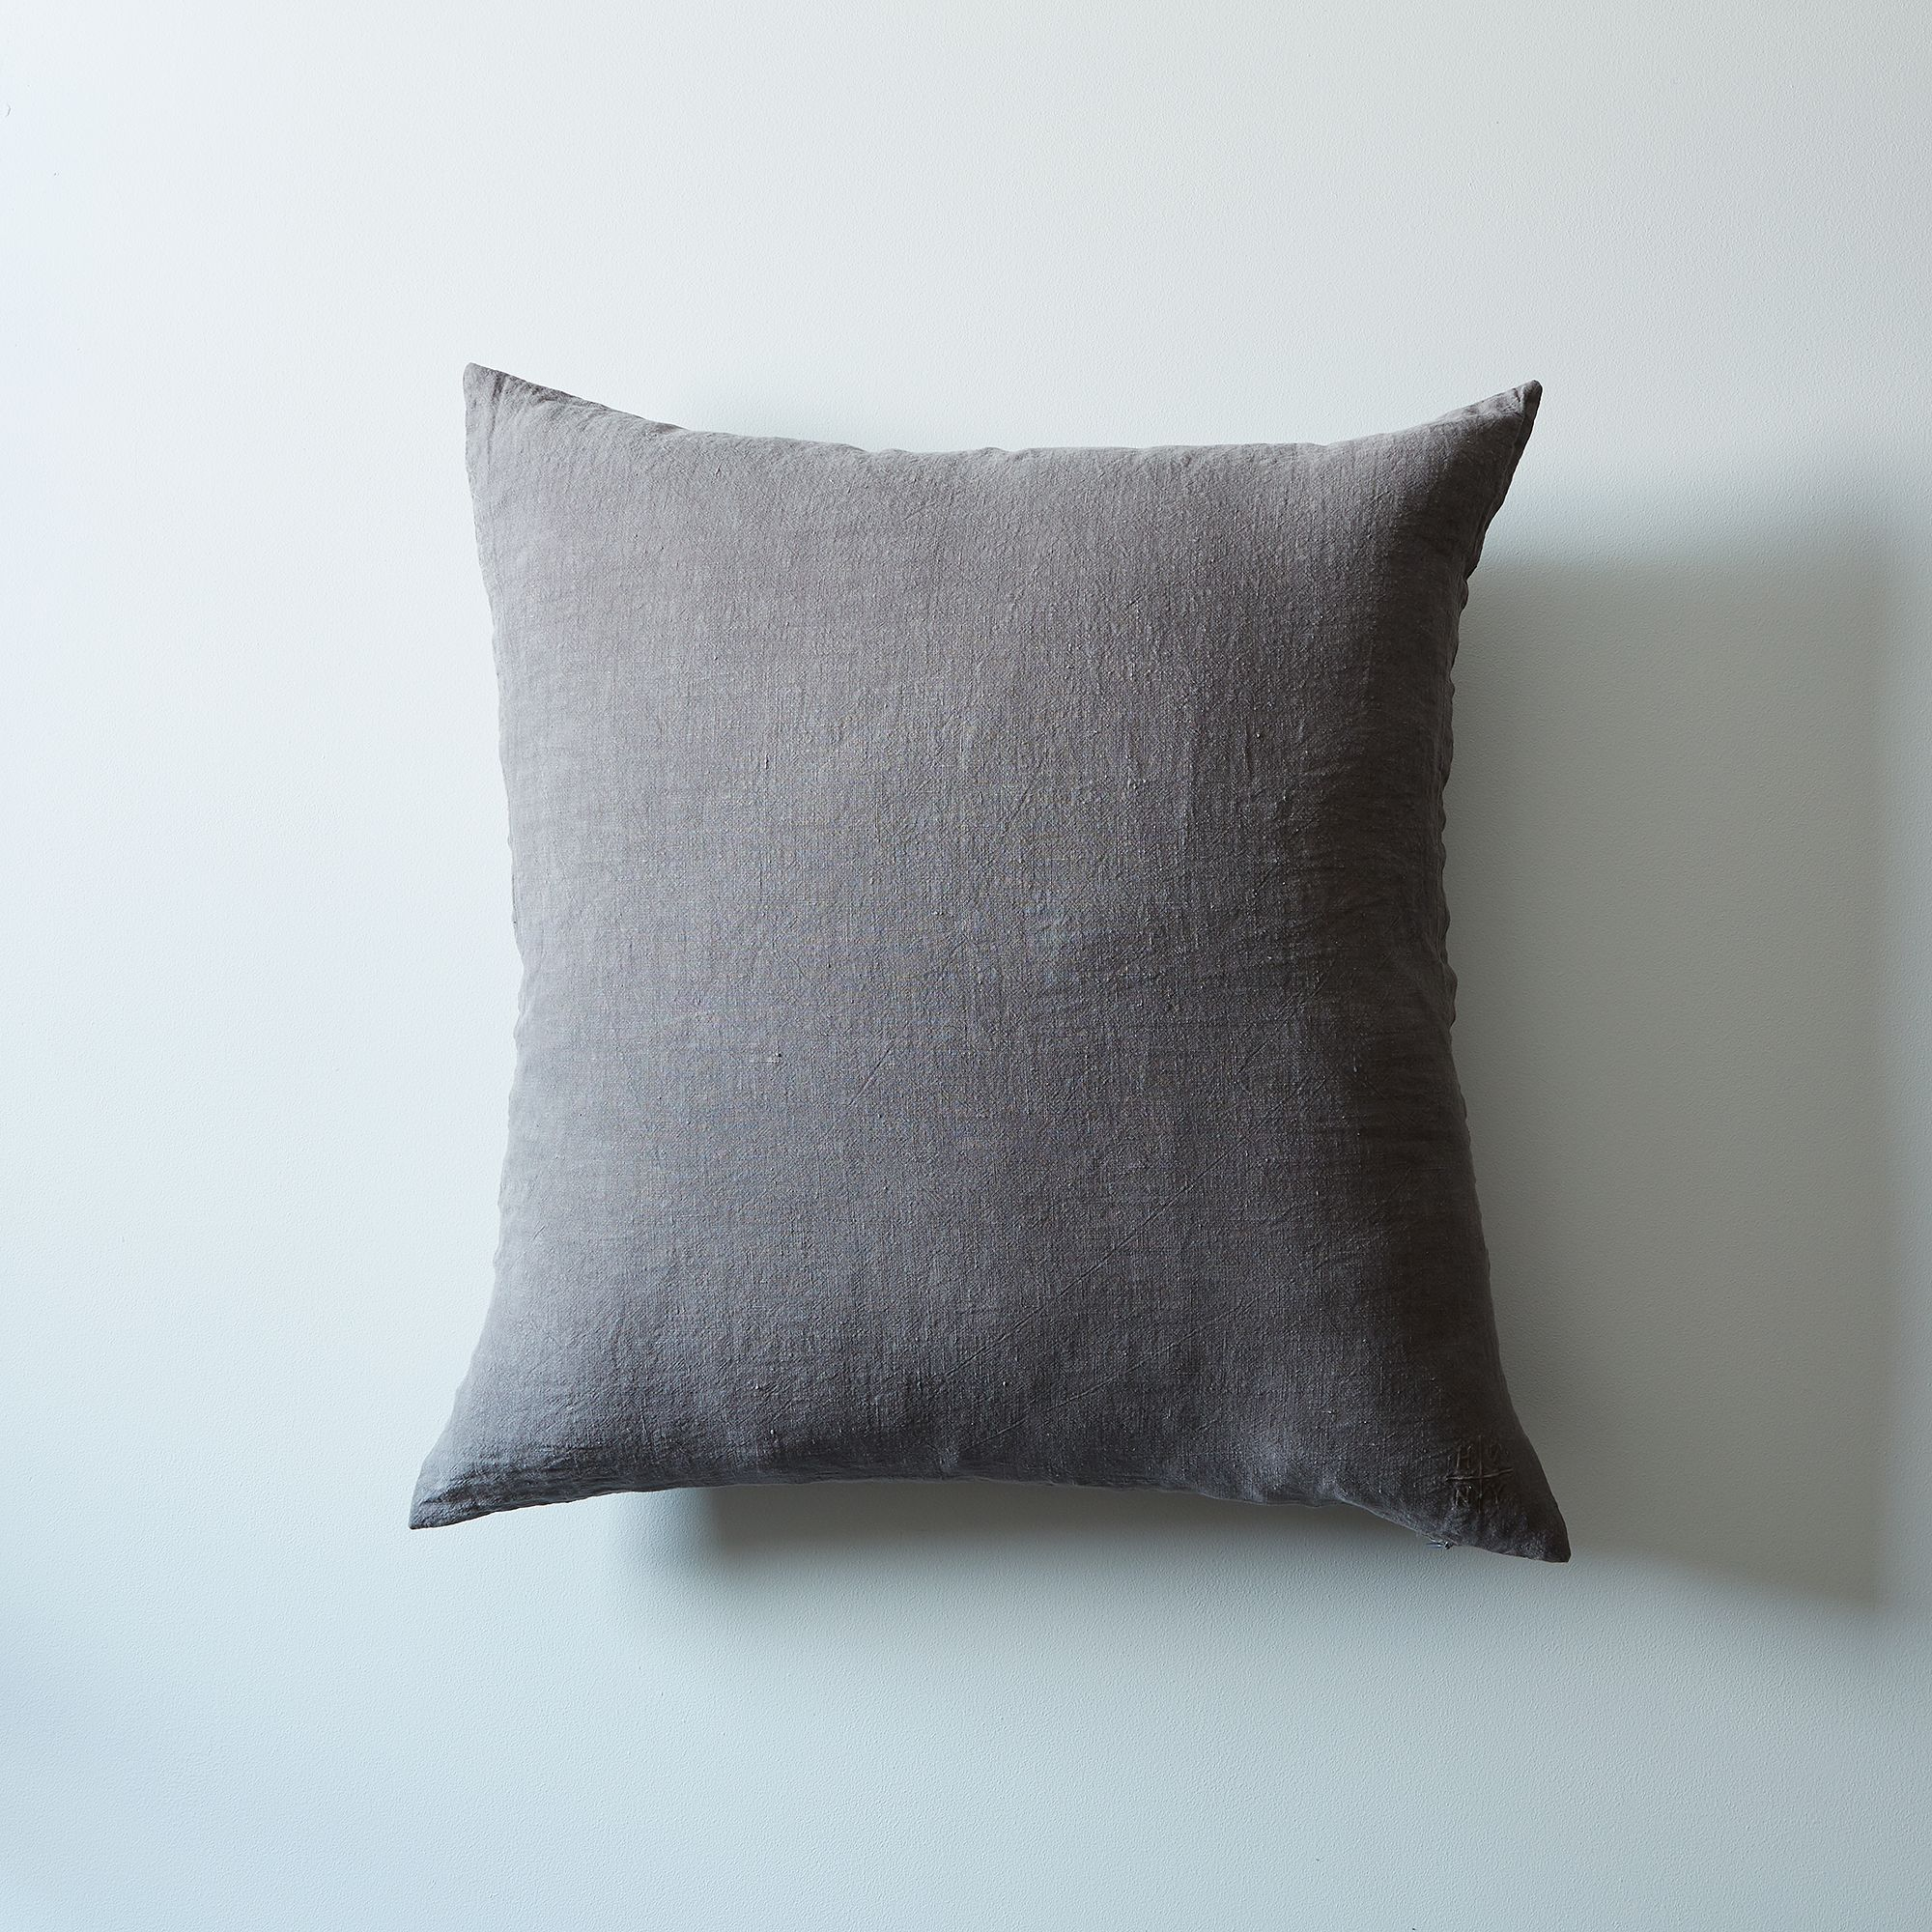 71385864 a0f8 11e5 a190 0ef7535729df  2015 0529 hawkins ny stonewashed linen pillow covers charcoal w pillow bobbi lin 0493